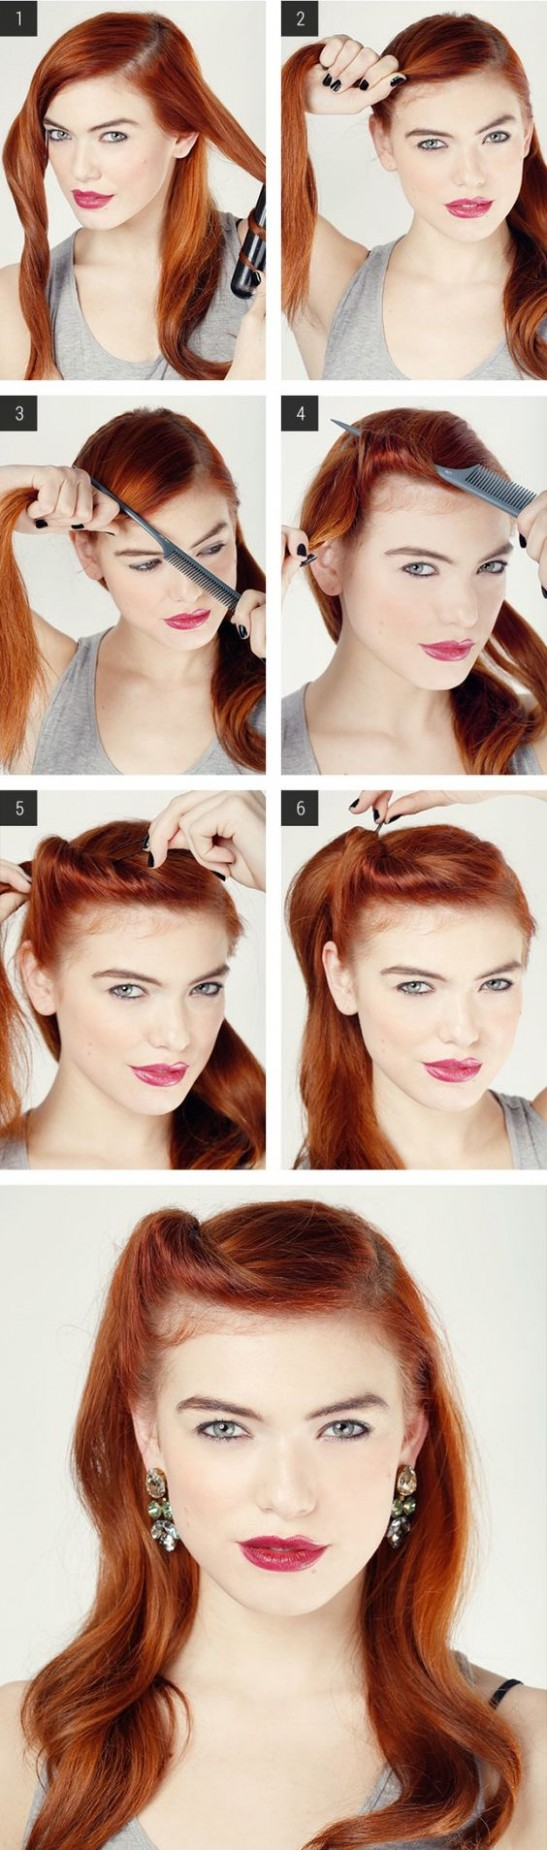 10 Elegant Retro Hairstyles 1021 Vintage Hairstyles For Women Retro Hairstyle For Long Hair